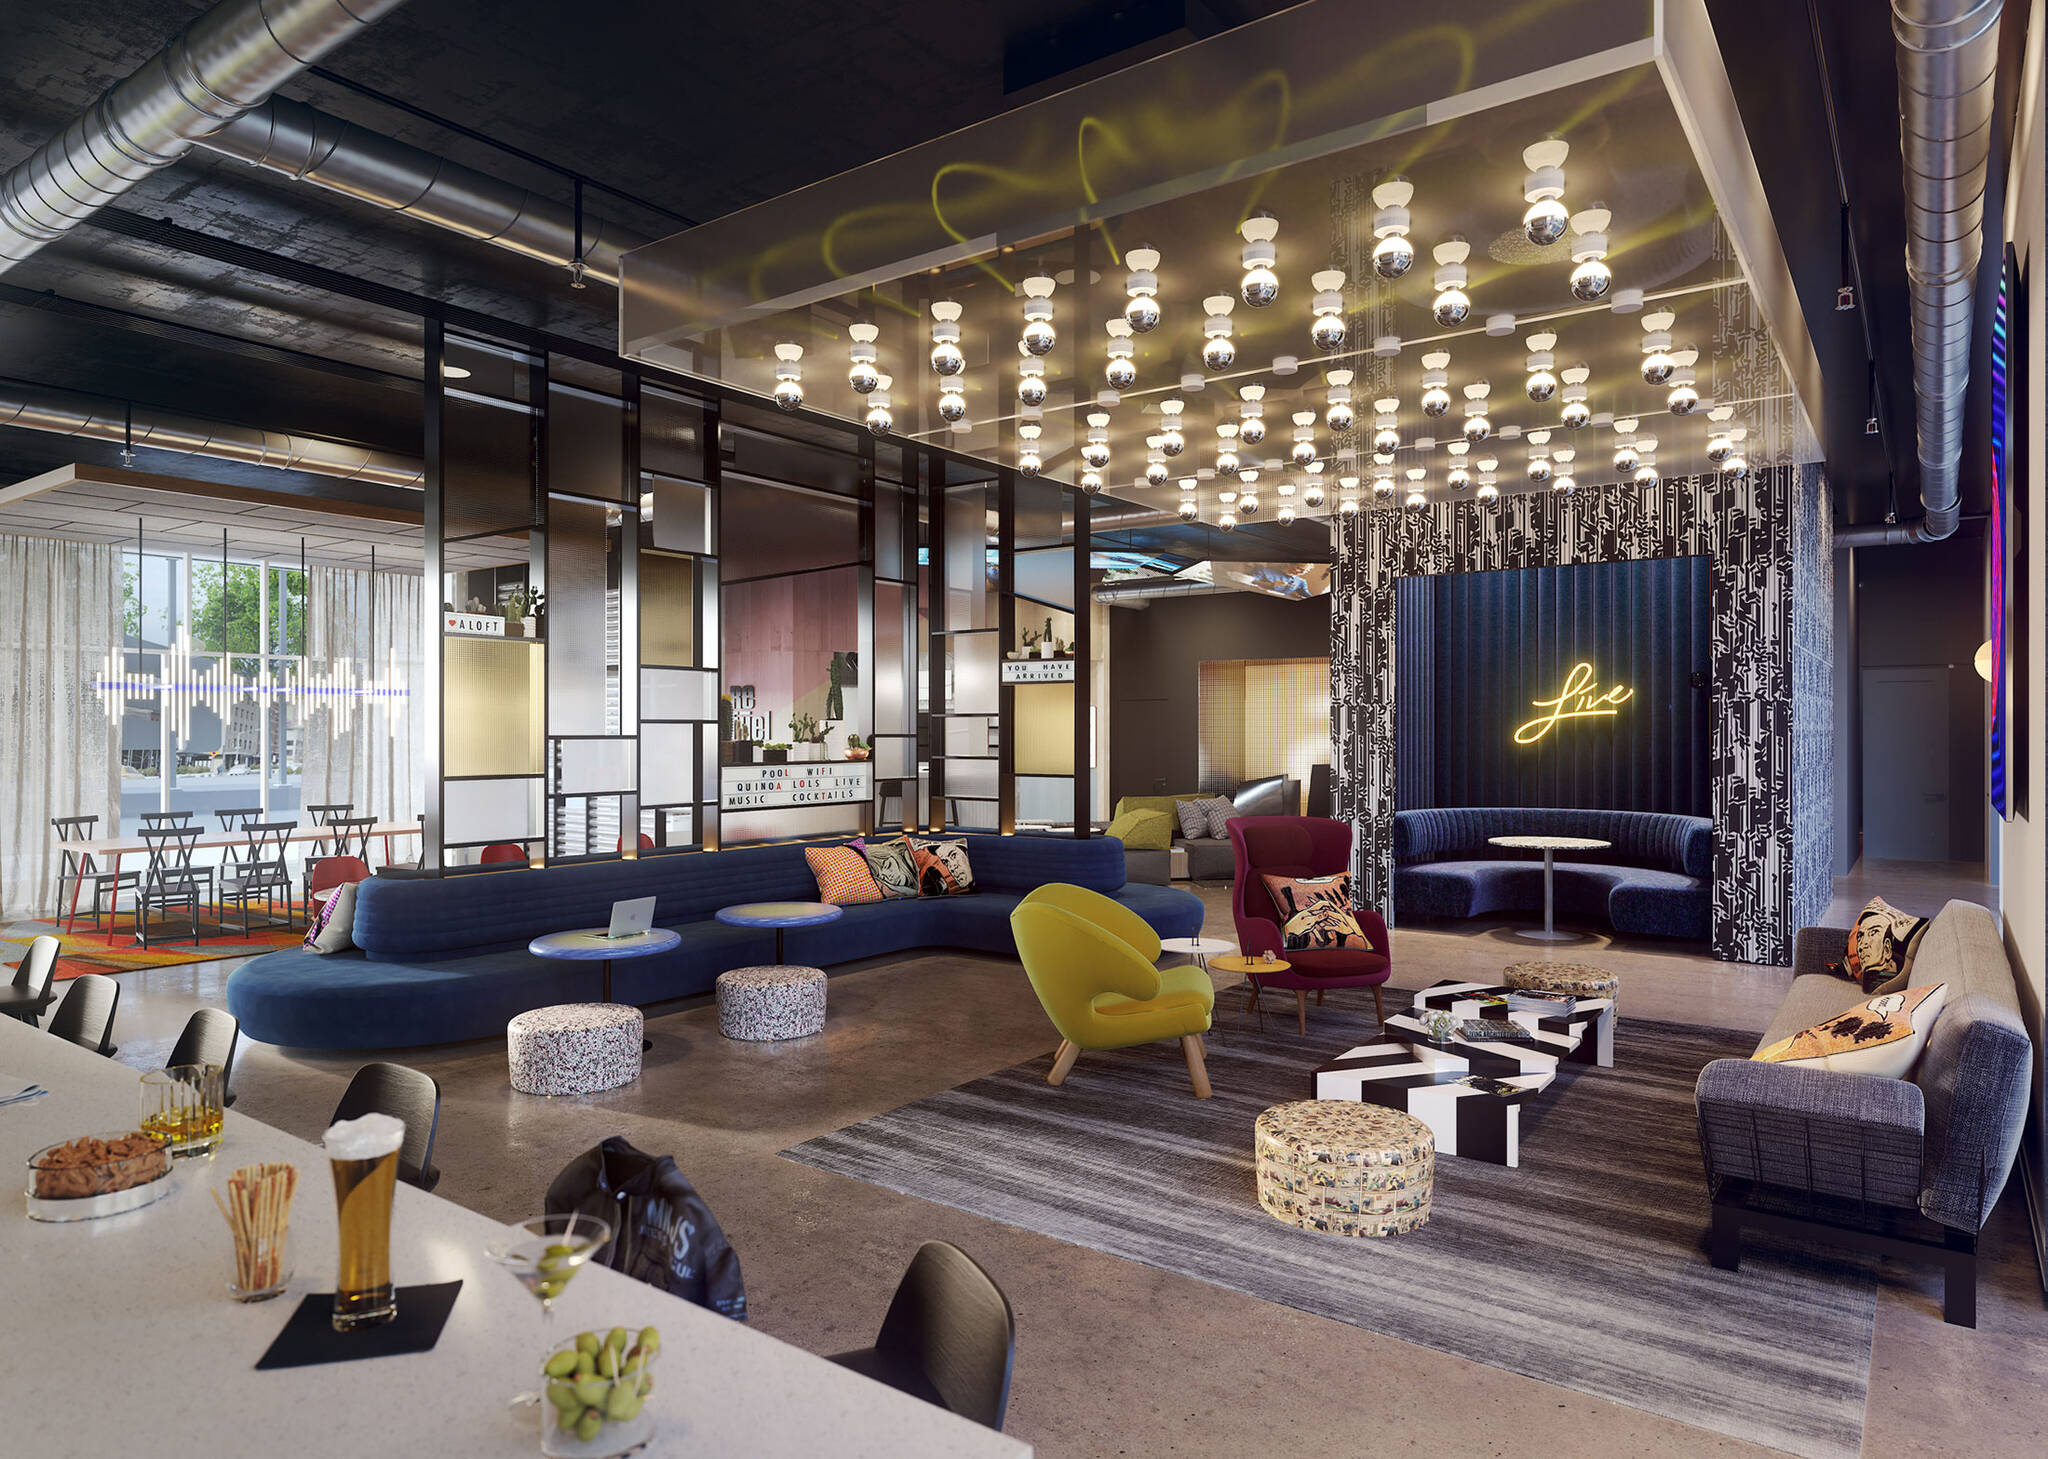 Lounge Bar of the Aloft Generation 4 Hotel project for Marriott International designed by the architecture studio Danny Forster & Architecture